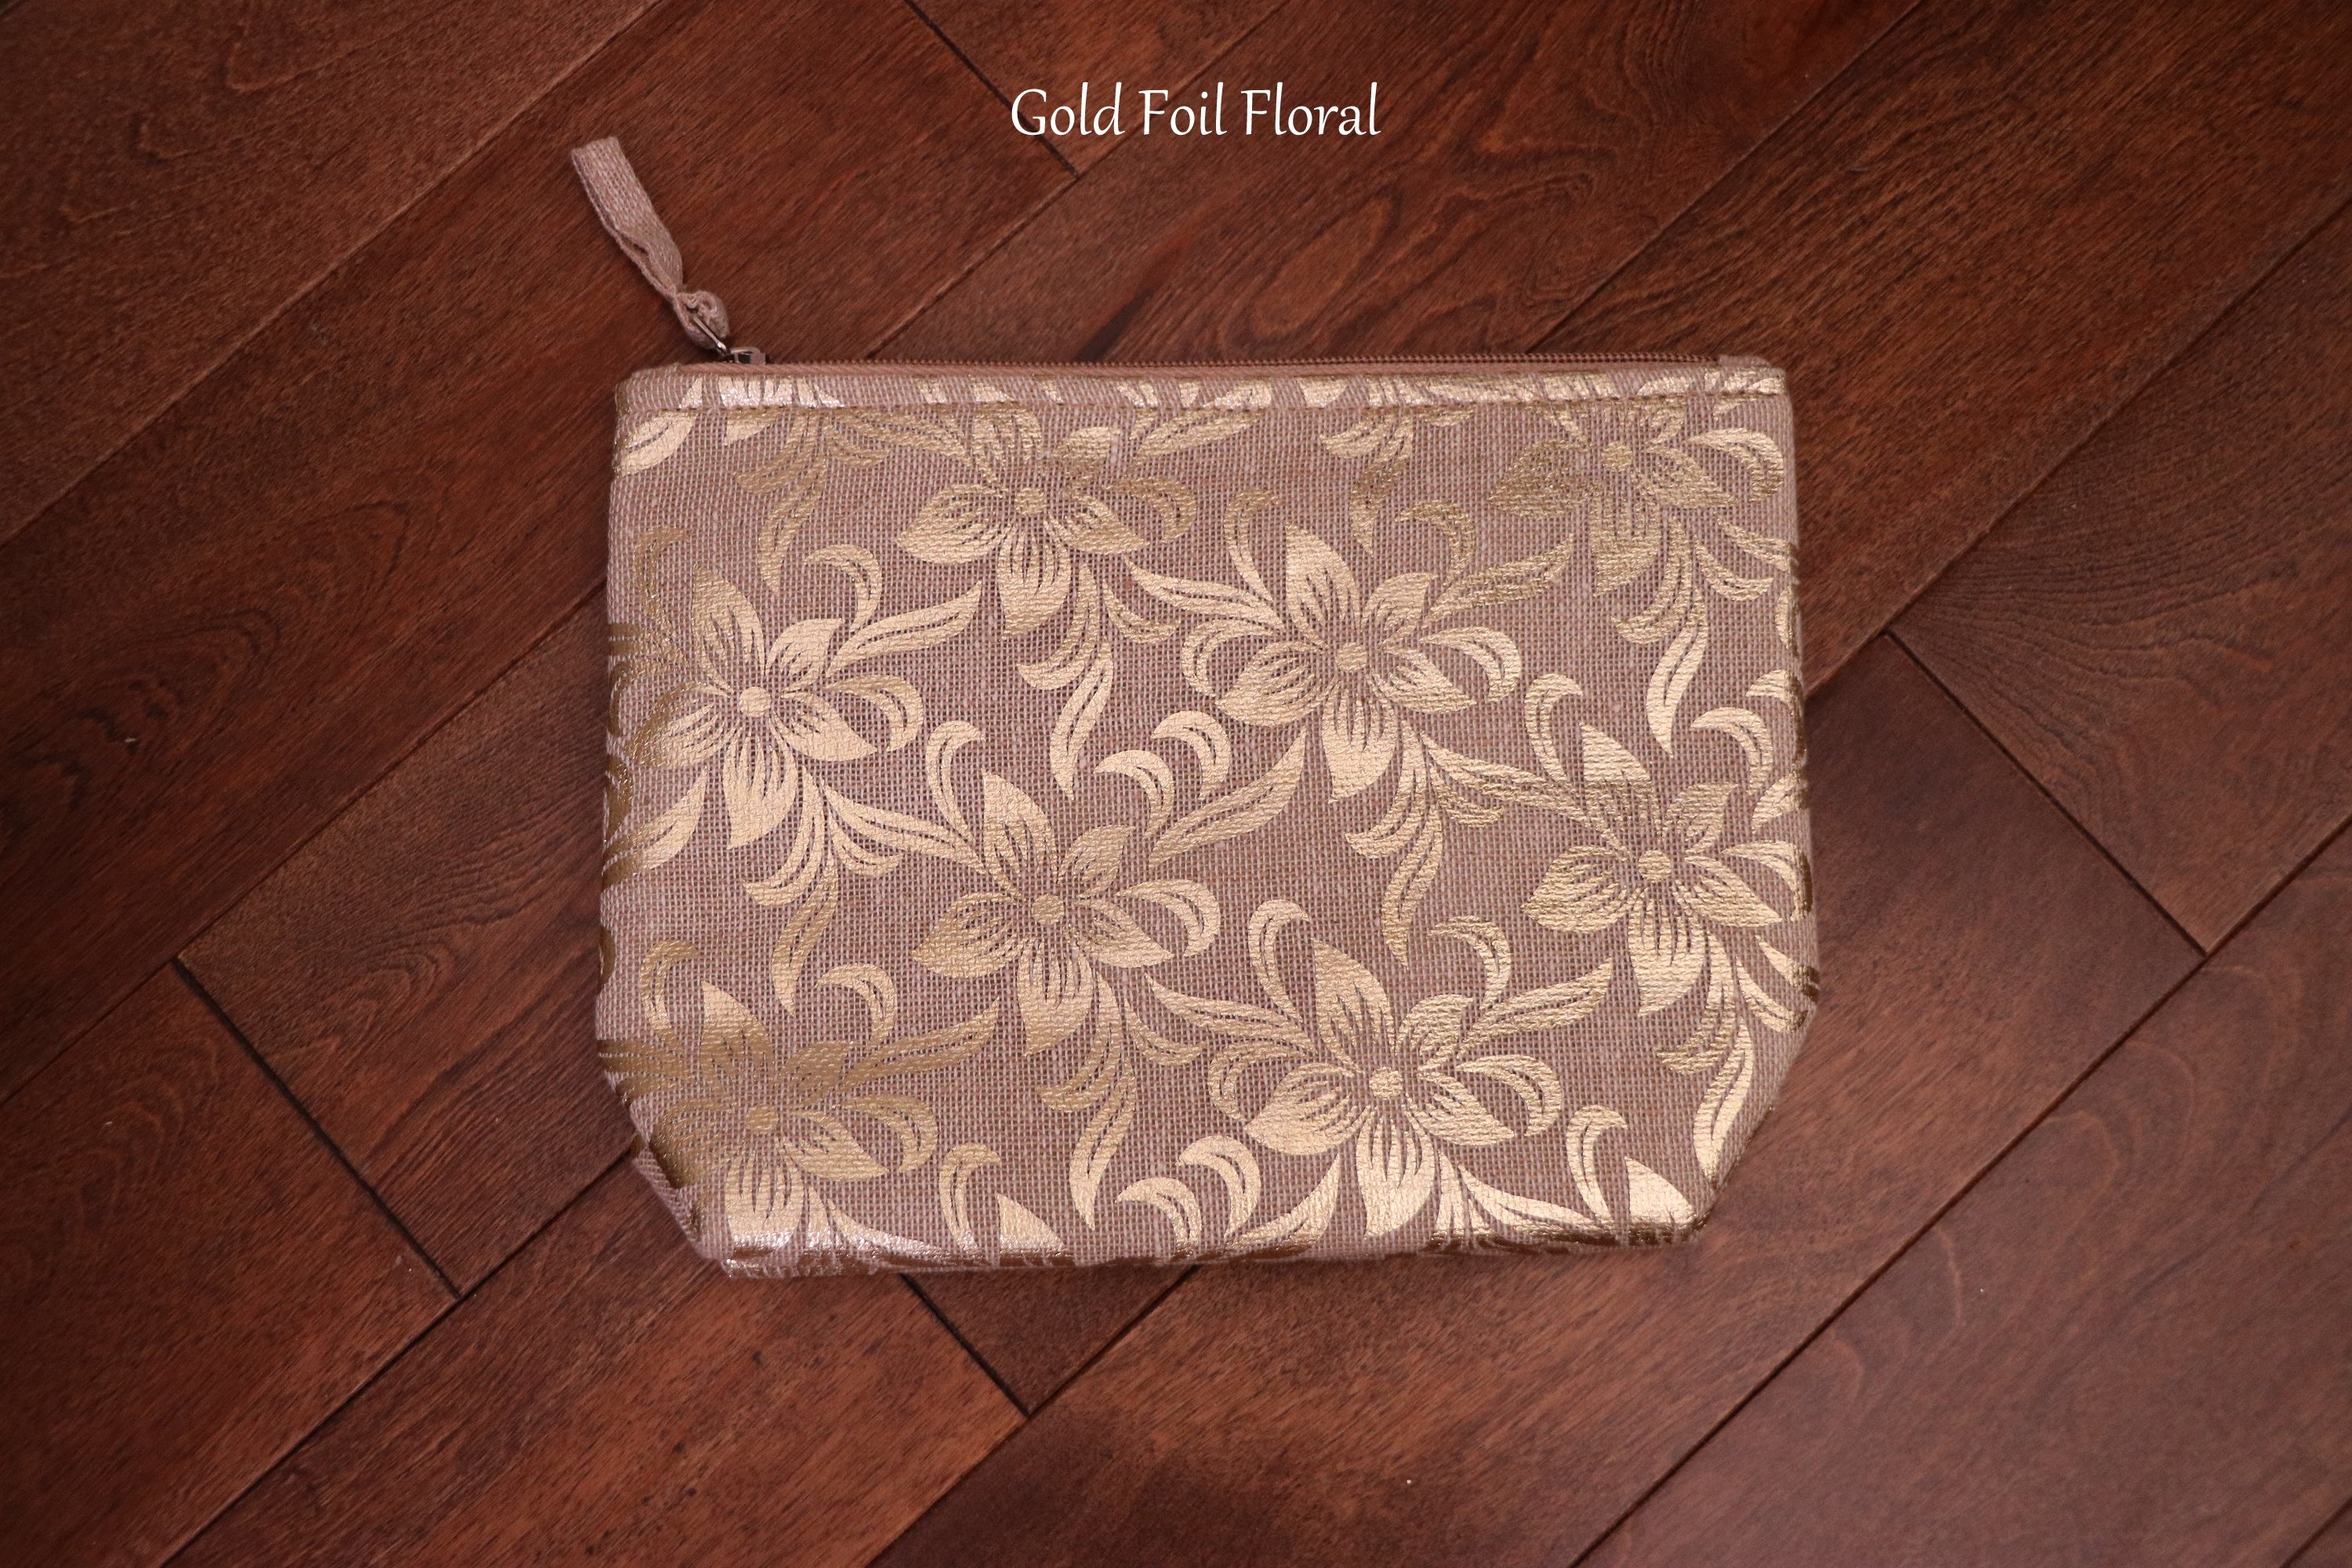 Gold Foil Cosmetic Bags! Upcycled Metal Foil Print! Makeup Bags! Metallic Print Makeup Bags! Cosmetic Pouches for Women! Vanity Bags!